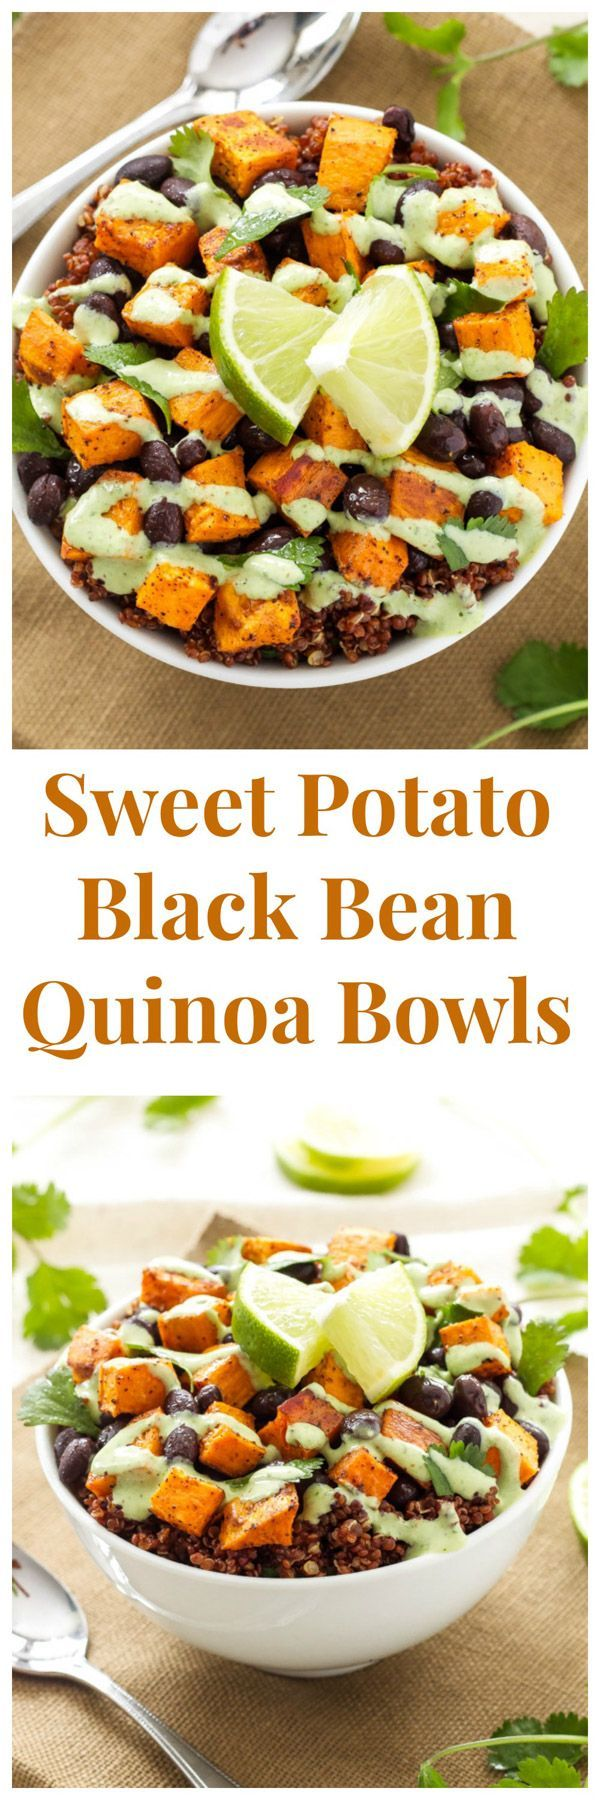 Sweet Potato and Black Bean Quinoa Bowls -- A delicious, filling, meatless meal that will please both vegetarians and meat lovers! #healthy #vegetarian  #lunchideas